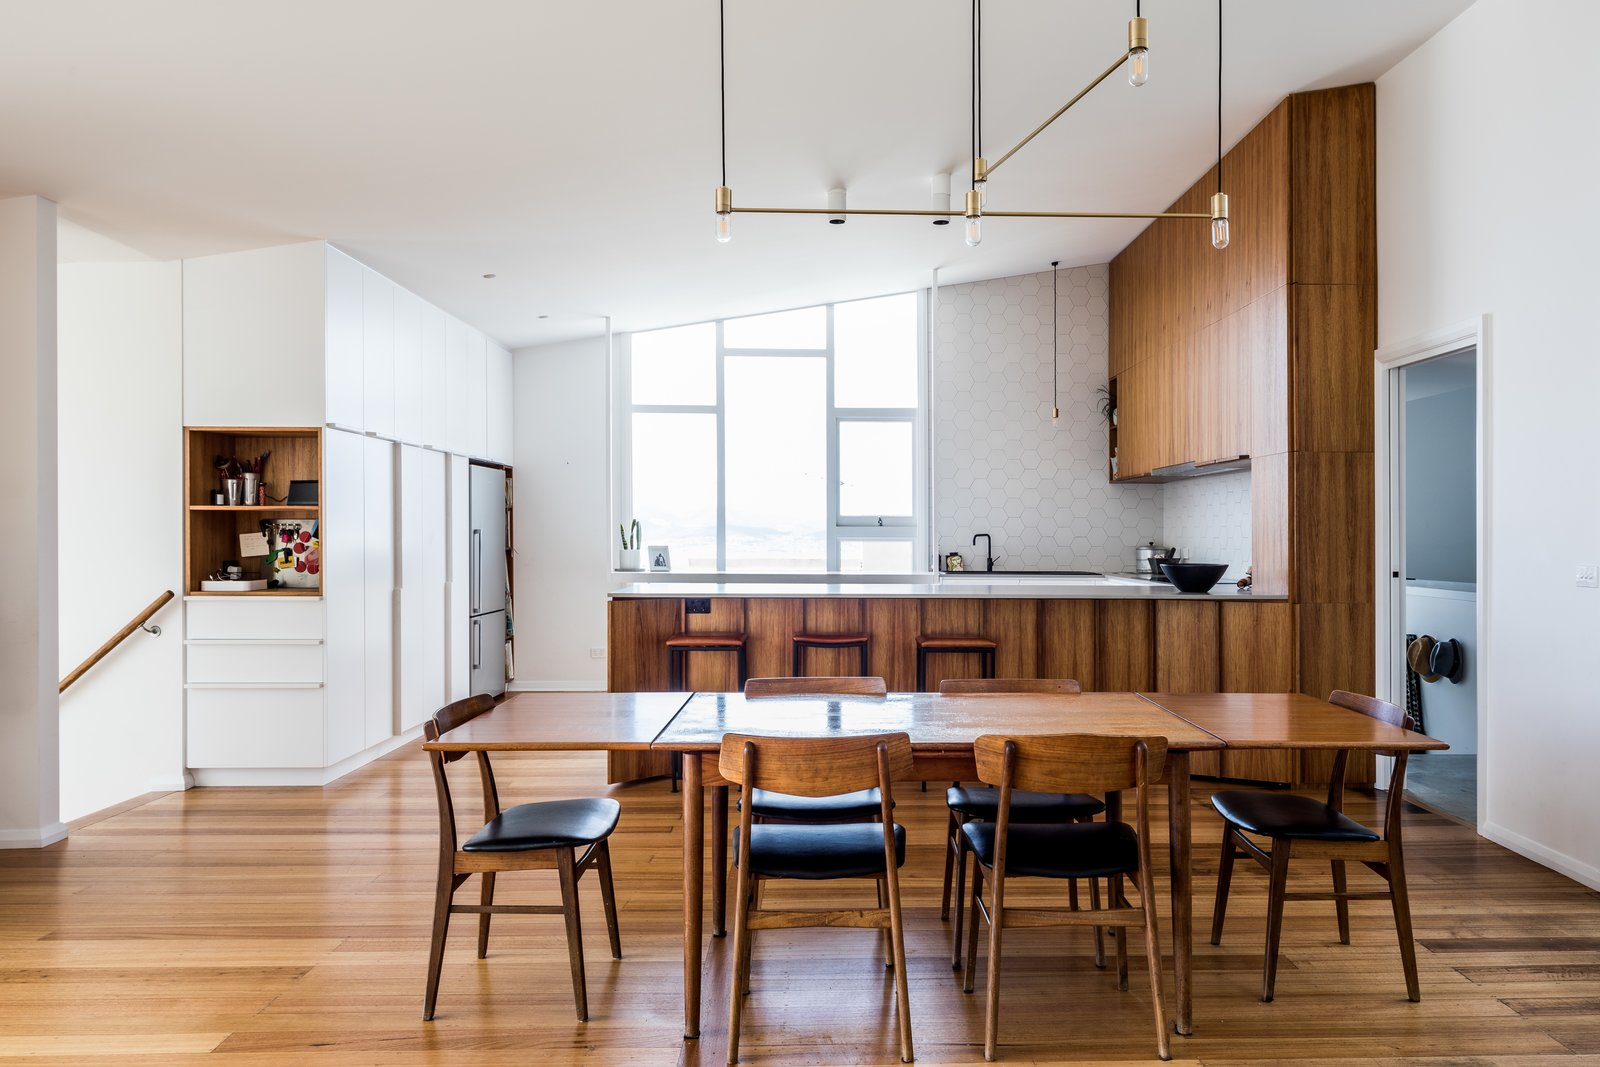 """Kitchen, Concrete, White, Wood, Refrigerator, Medium Hardwood, Ceiling, Pendant, and Ceramic Tile In this Tasmanian midcentury, the architects gently reworked the interior layout, replacing a small sitting room and bath/laundry with a new kitchen. The kitchen's wood cabinetry """"references the original timber joinery elsewhere,"""" write the architects.  Best Kitchen Wood Refrigerator Concrete Photos from An Architect's 1958 Midcentury in Tasmania Gets a Graceful Renovation"""